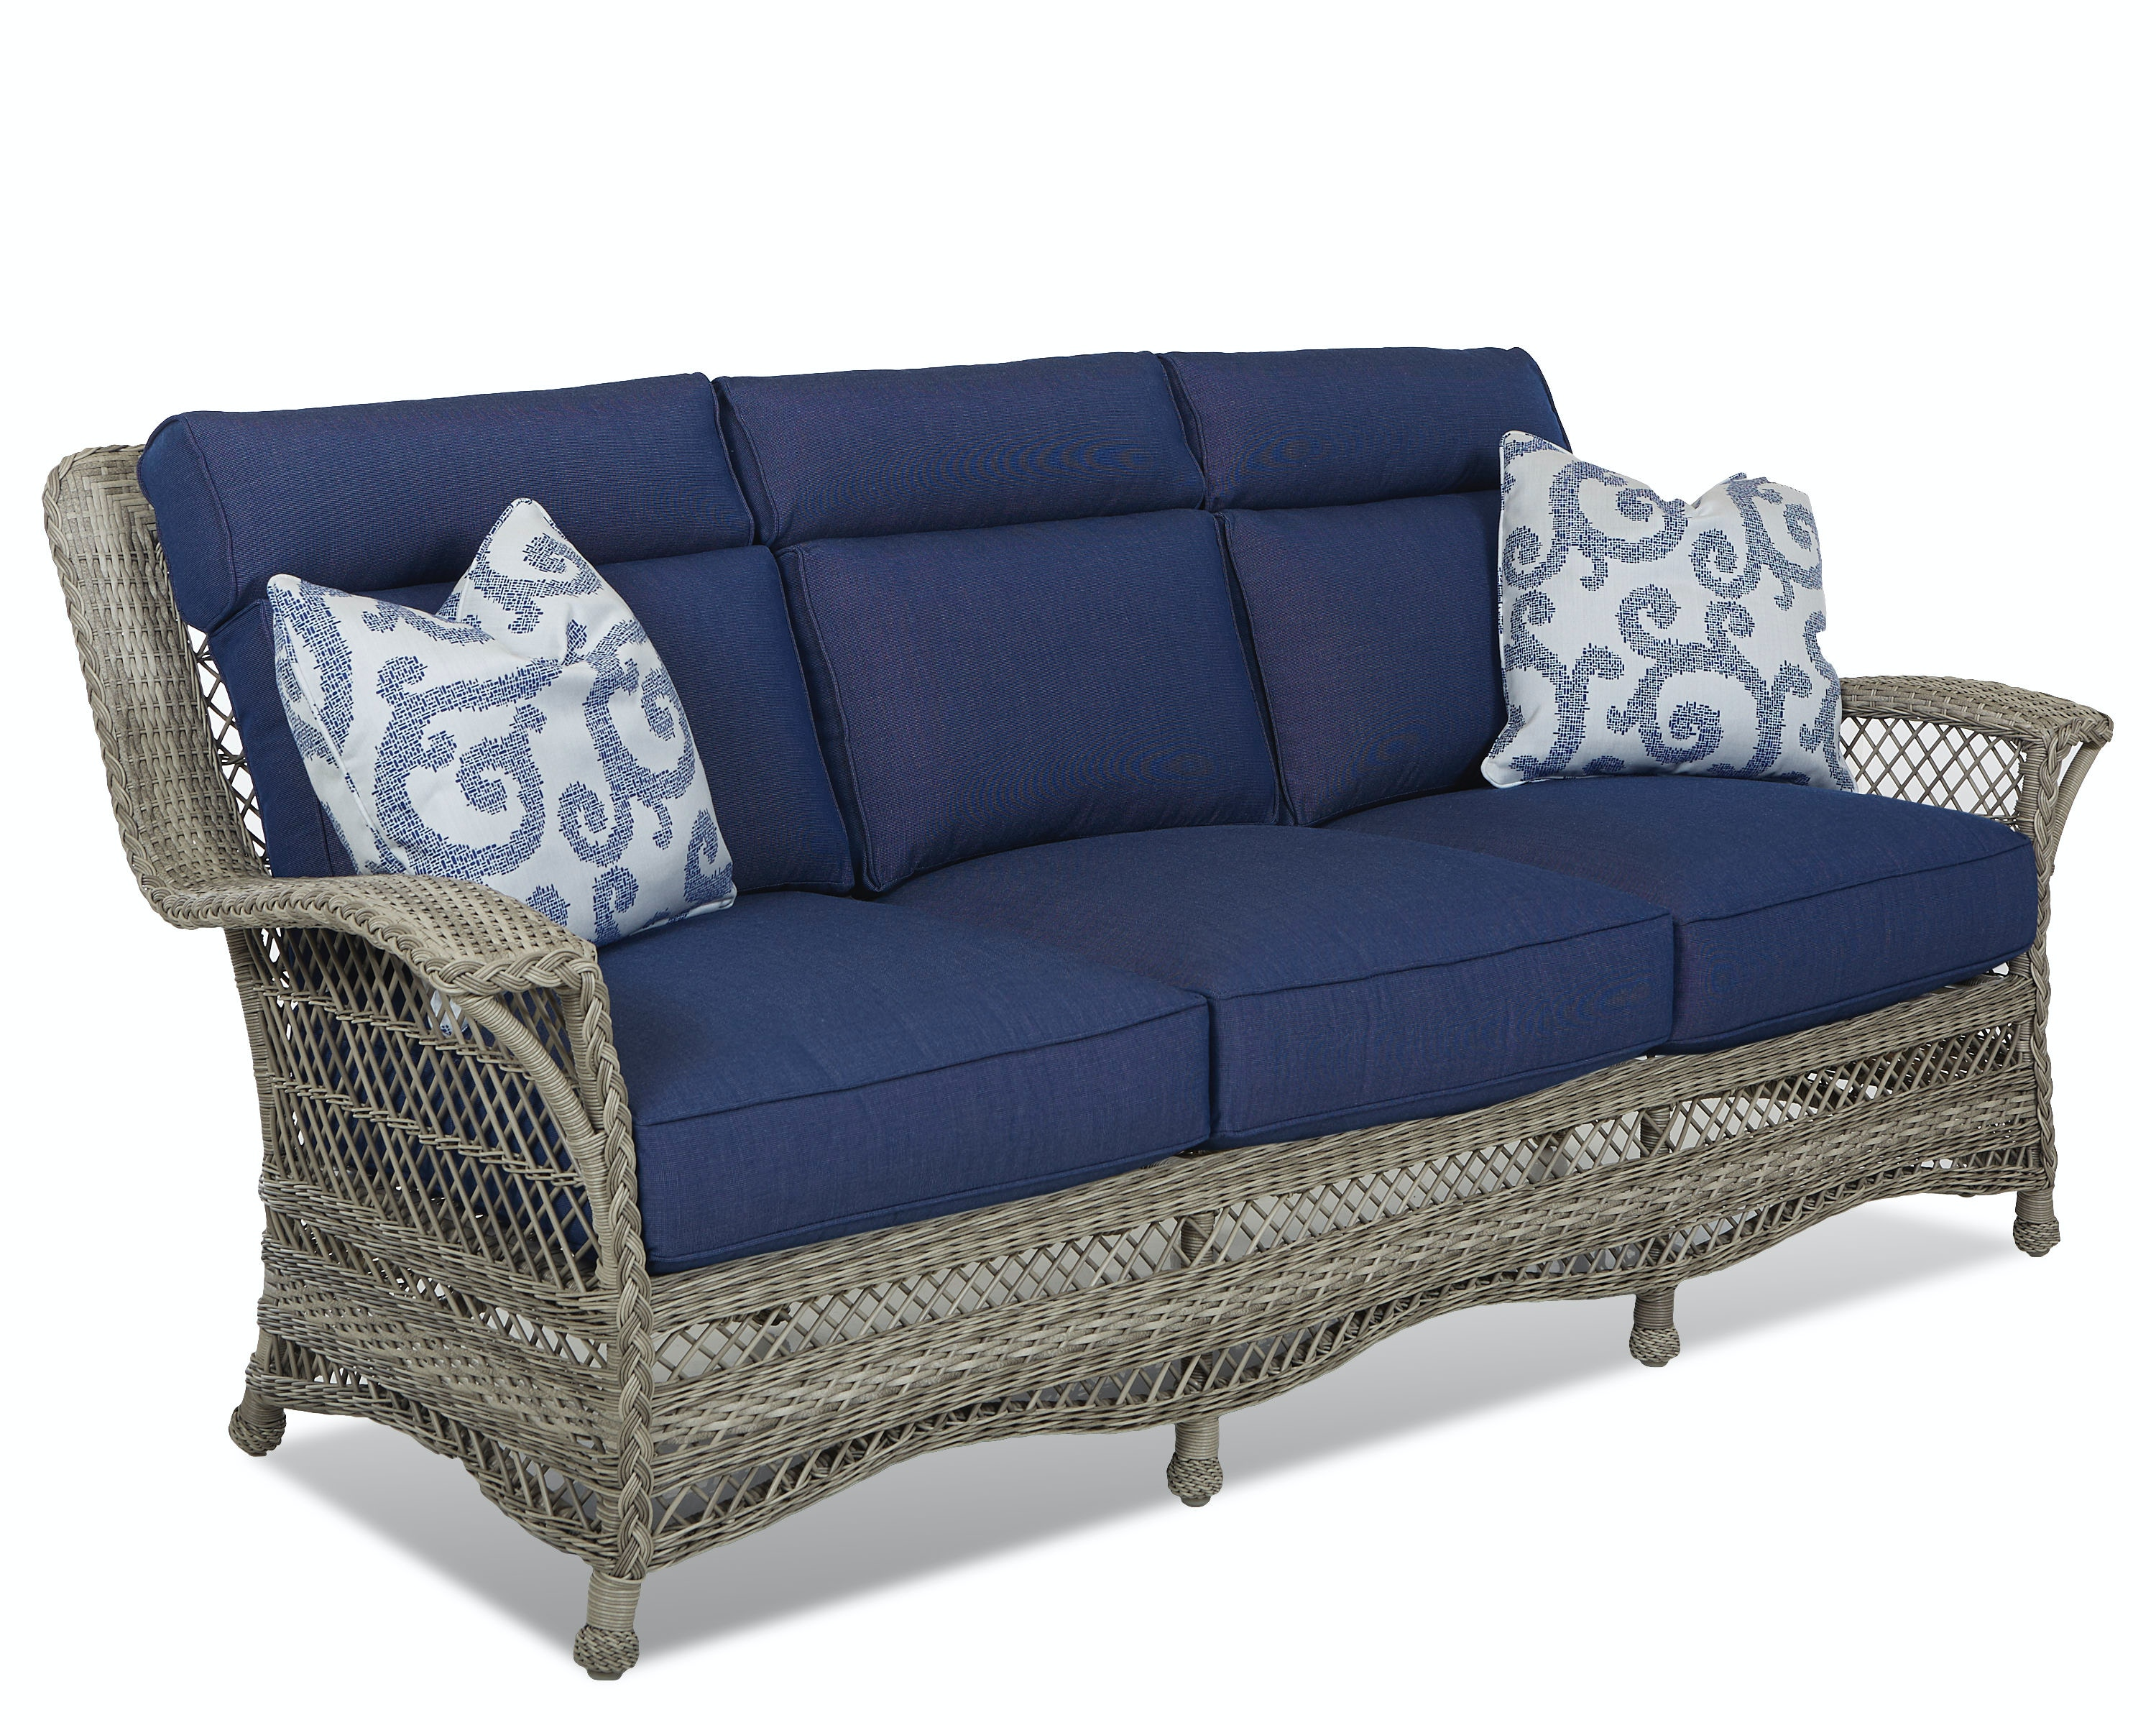 klaussner outdoor outdoor  patio willow sofa w1200 s - klaussner outdoor